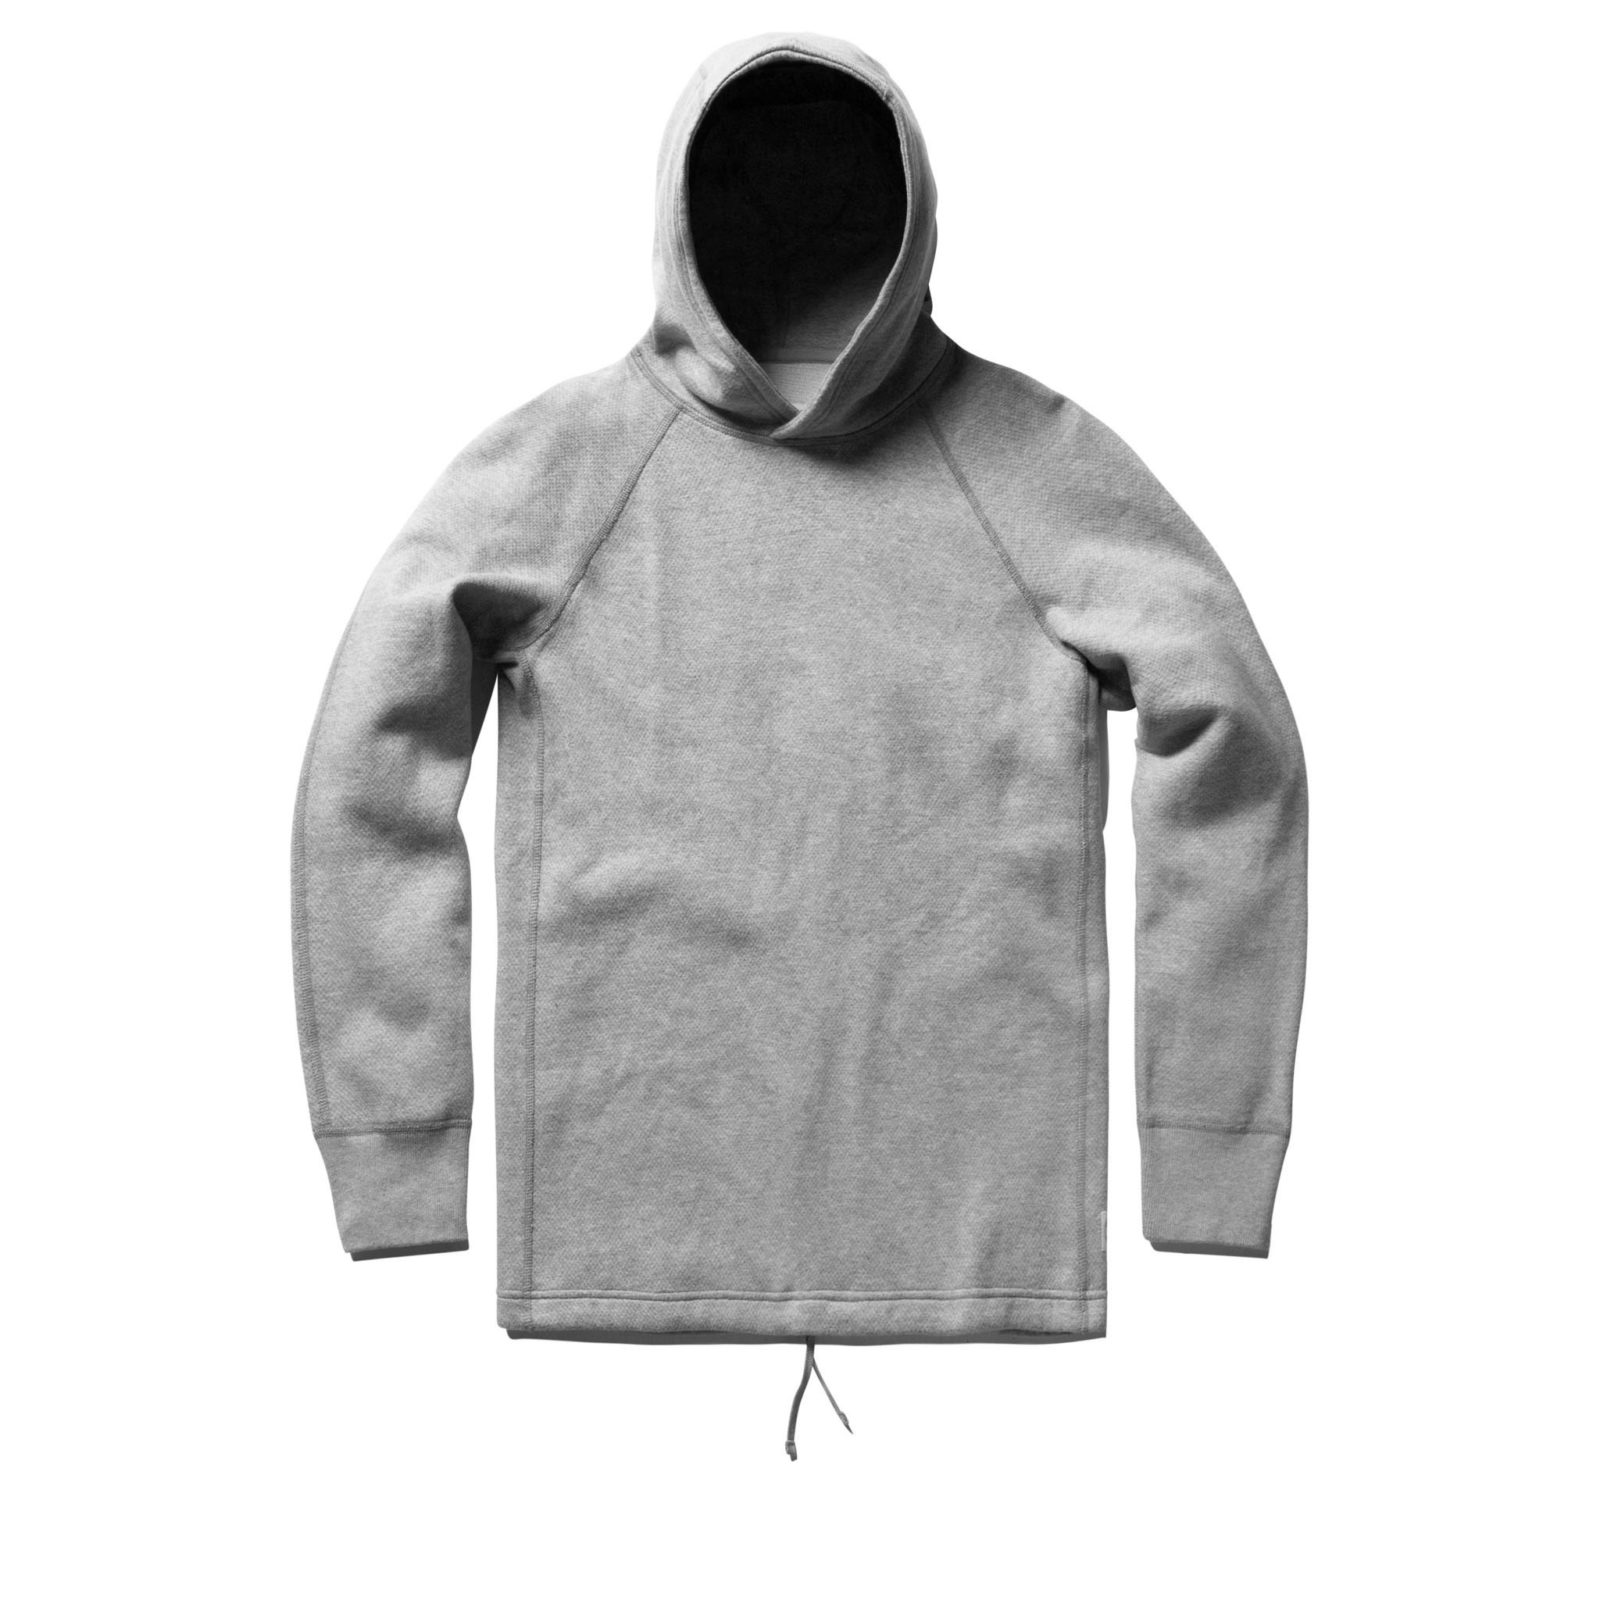 REIGNING CHAMP MESH DOUBLE KNIT PULLOVER HOODIE